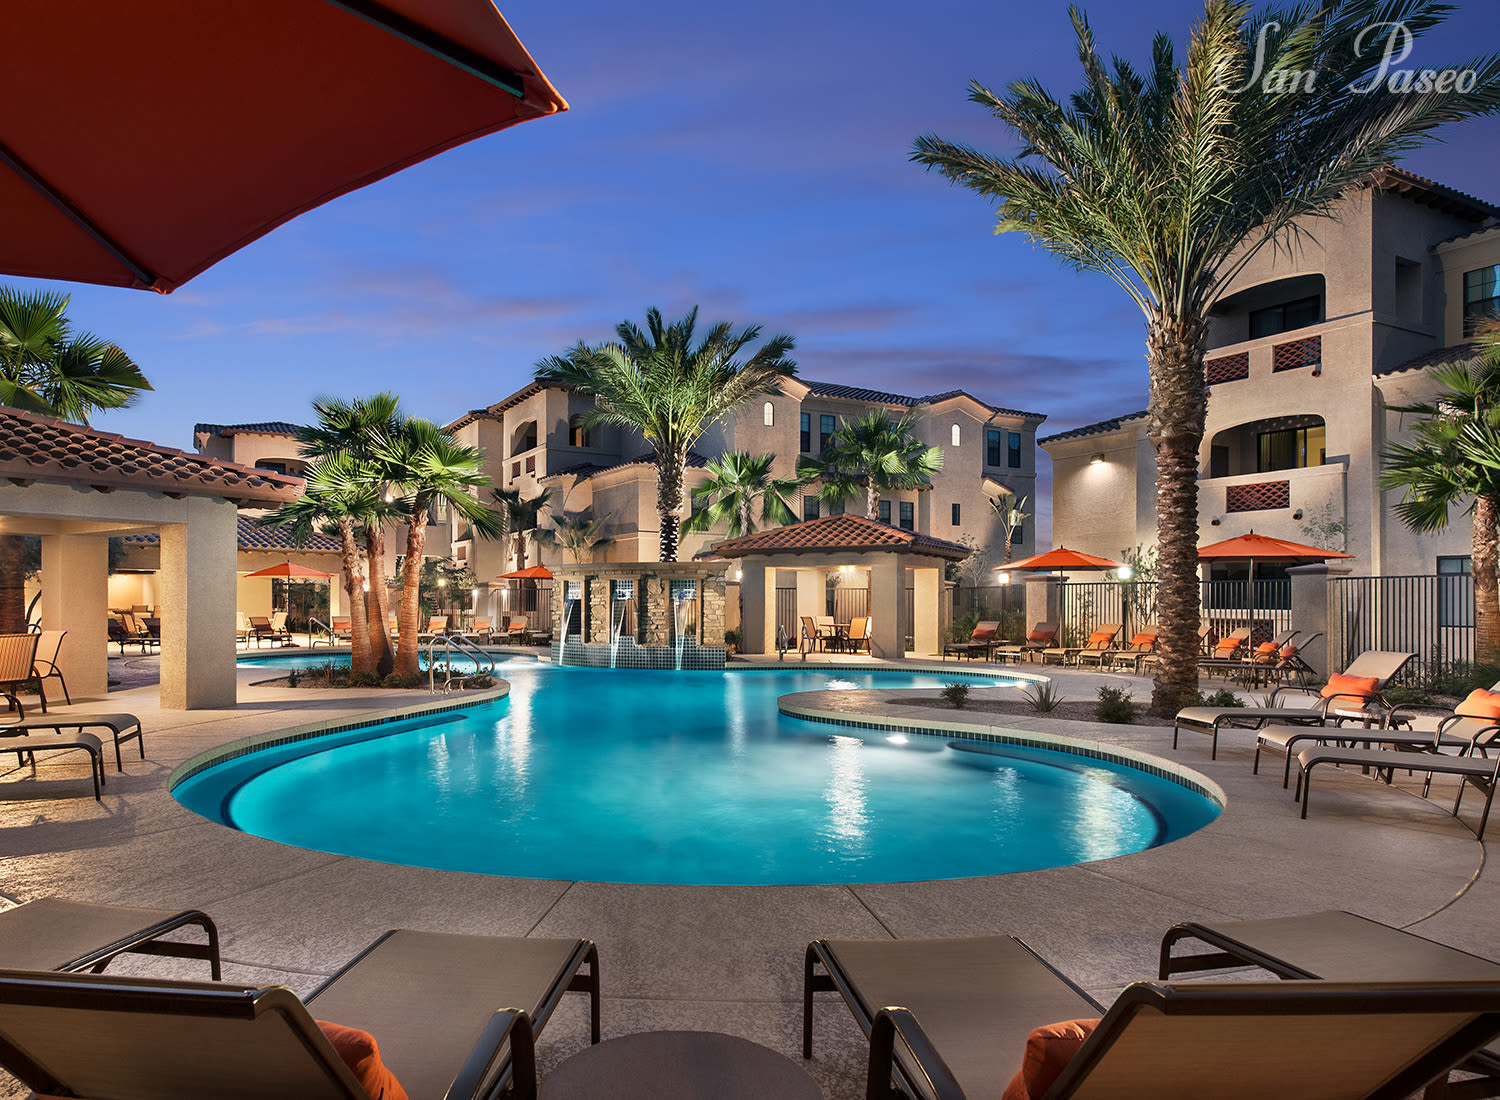 San Paseo apartments in Phoenix, Arizona